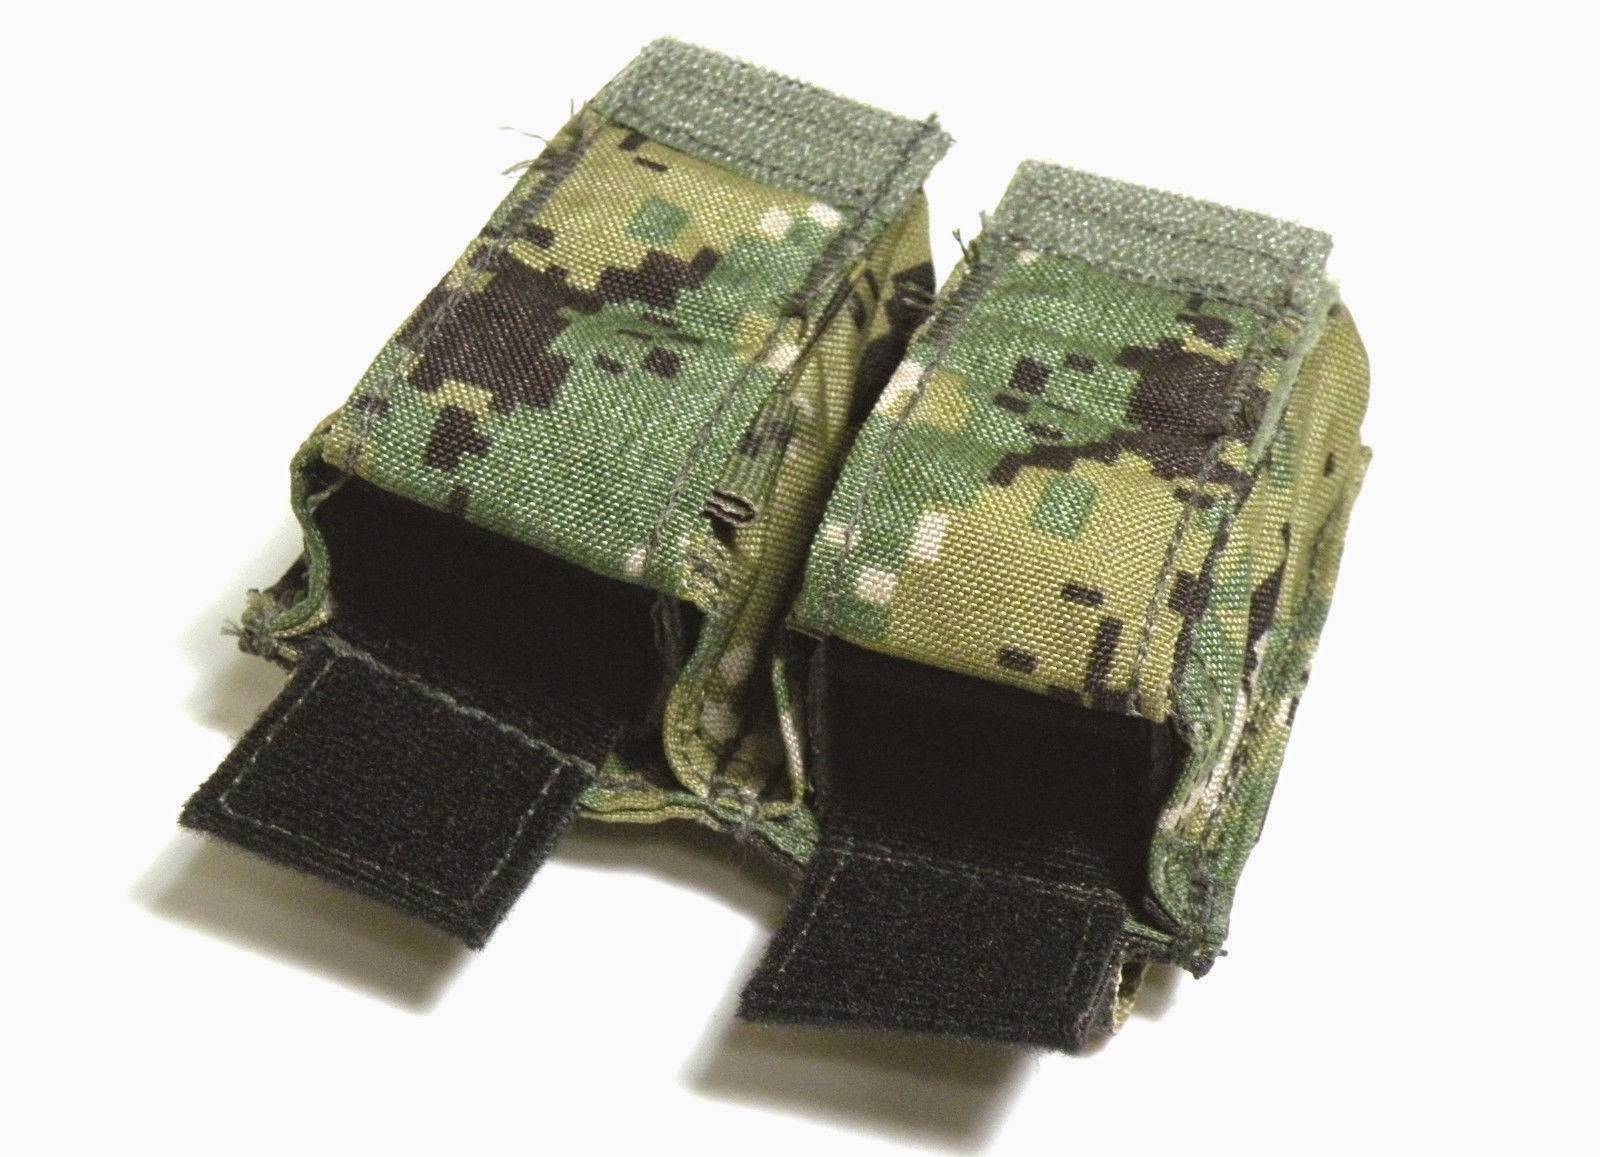 216569e735c9 Eagle Industries Double Pistol Mag Pouch, FB MOLLE (MP2-M9/FB1-MS) is made  of #1000 denier Cordura nylon with cloth lined plastic inserts for magazine  ...